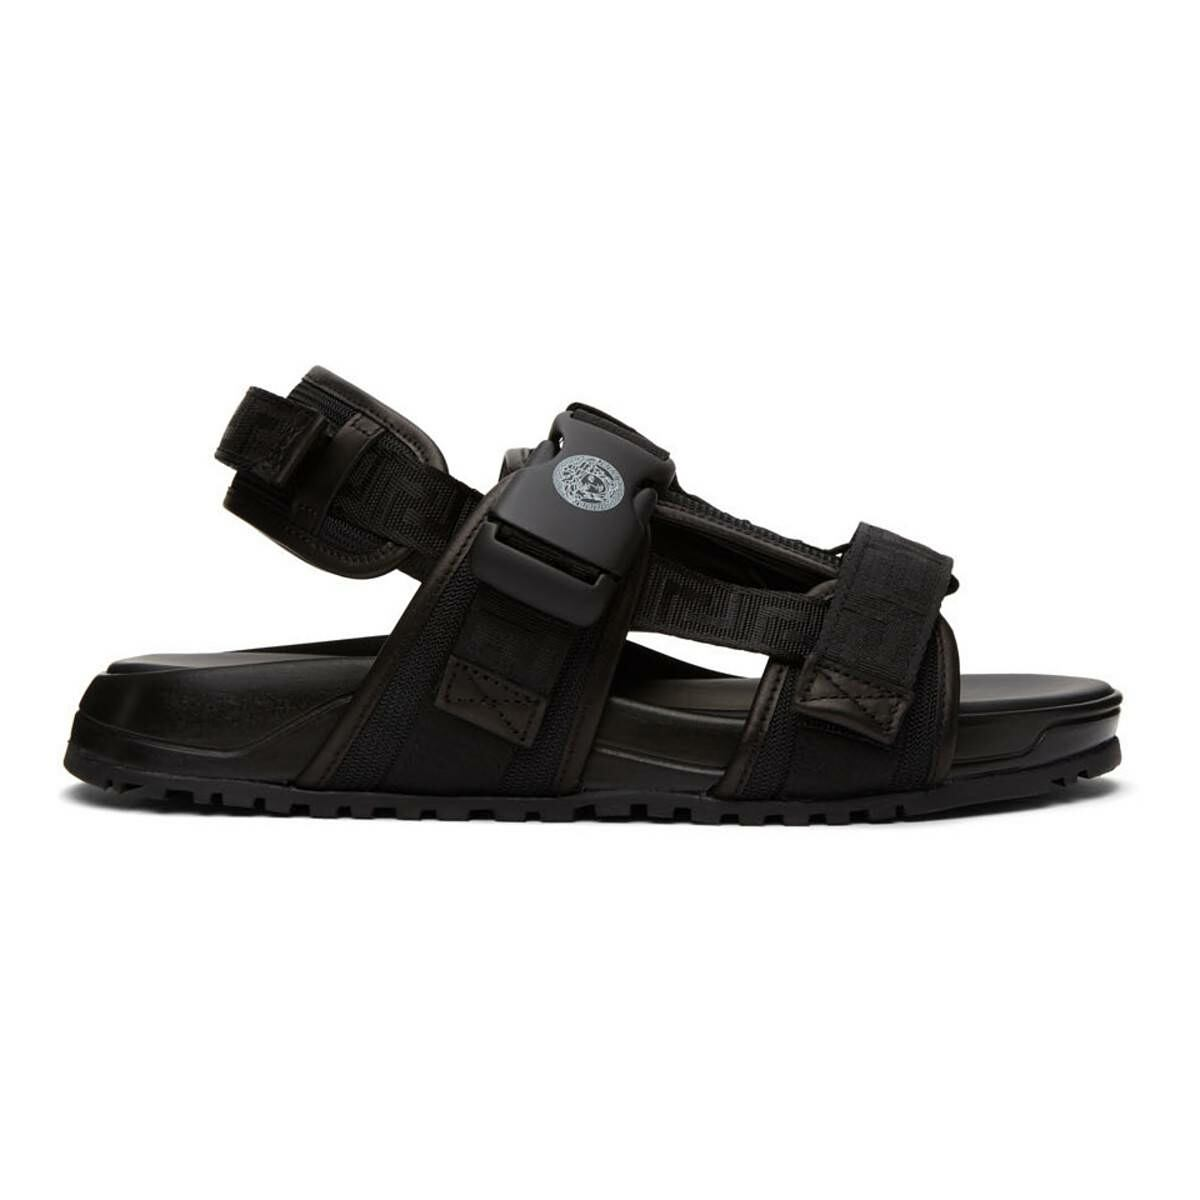 Versace Black Greca Straps Sandals Ssense USA MEN Men SHOES Mens SANDALS